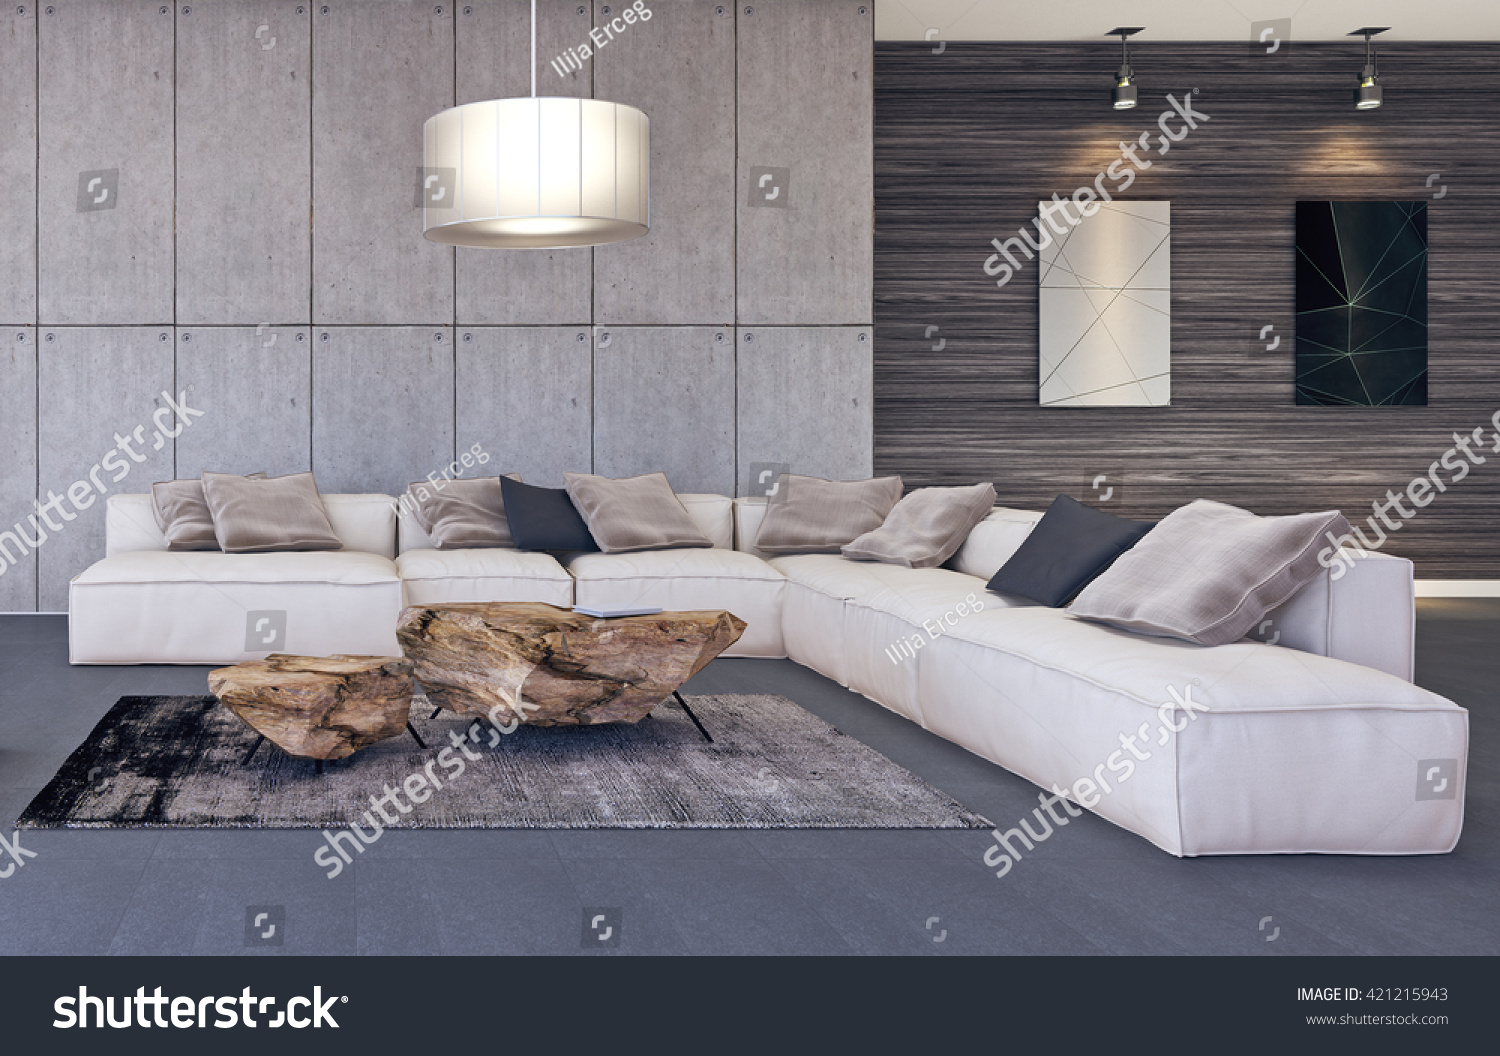 Modern interior design of living room 3D illustration  3D rendering. Modern Interior Design Living Room 3d Stock Illustration 421215943